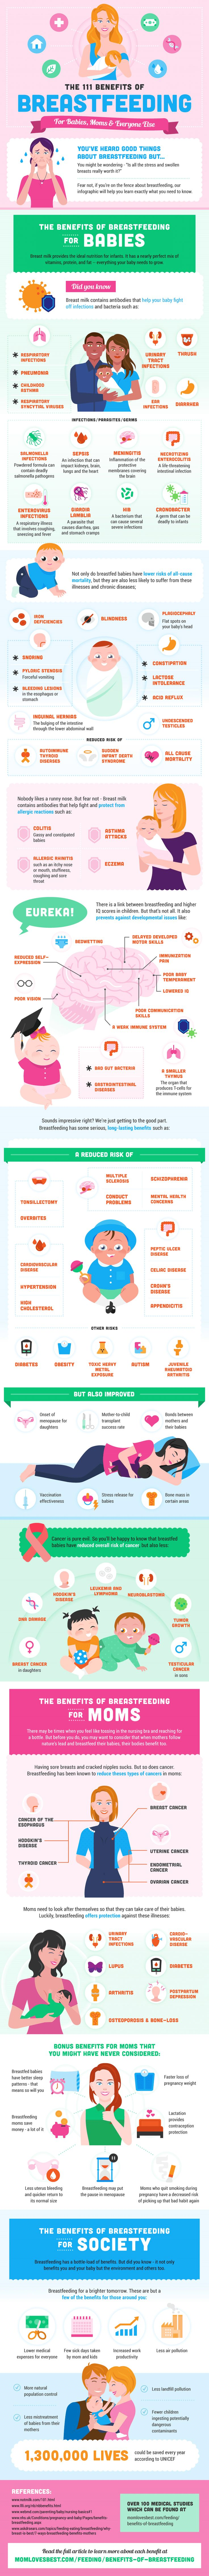 The 111 Benefits of Breastfeeding for Babies and Moms #infographic #Breastfeeding #Health #Child